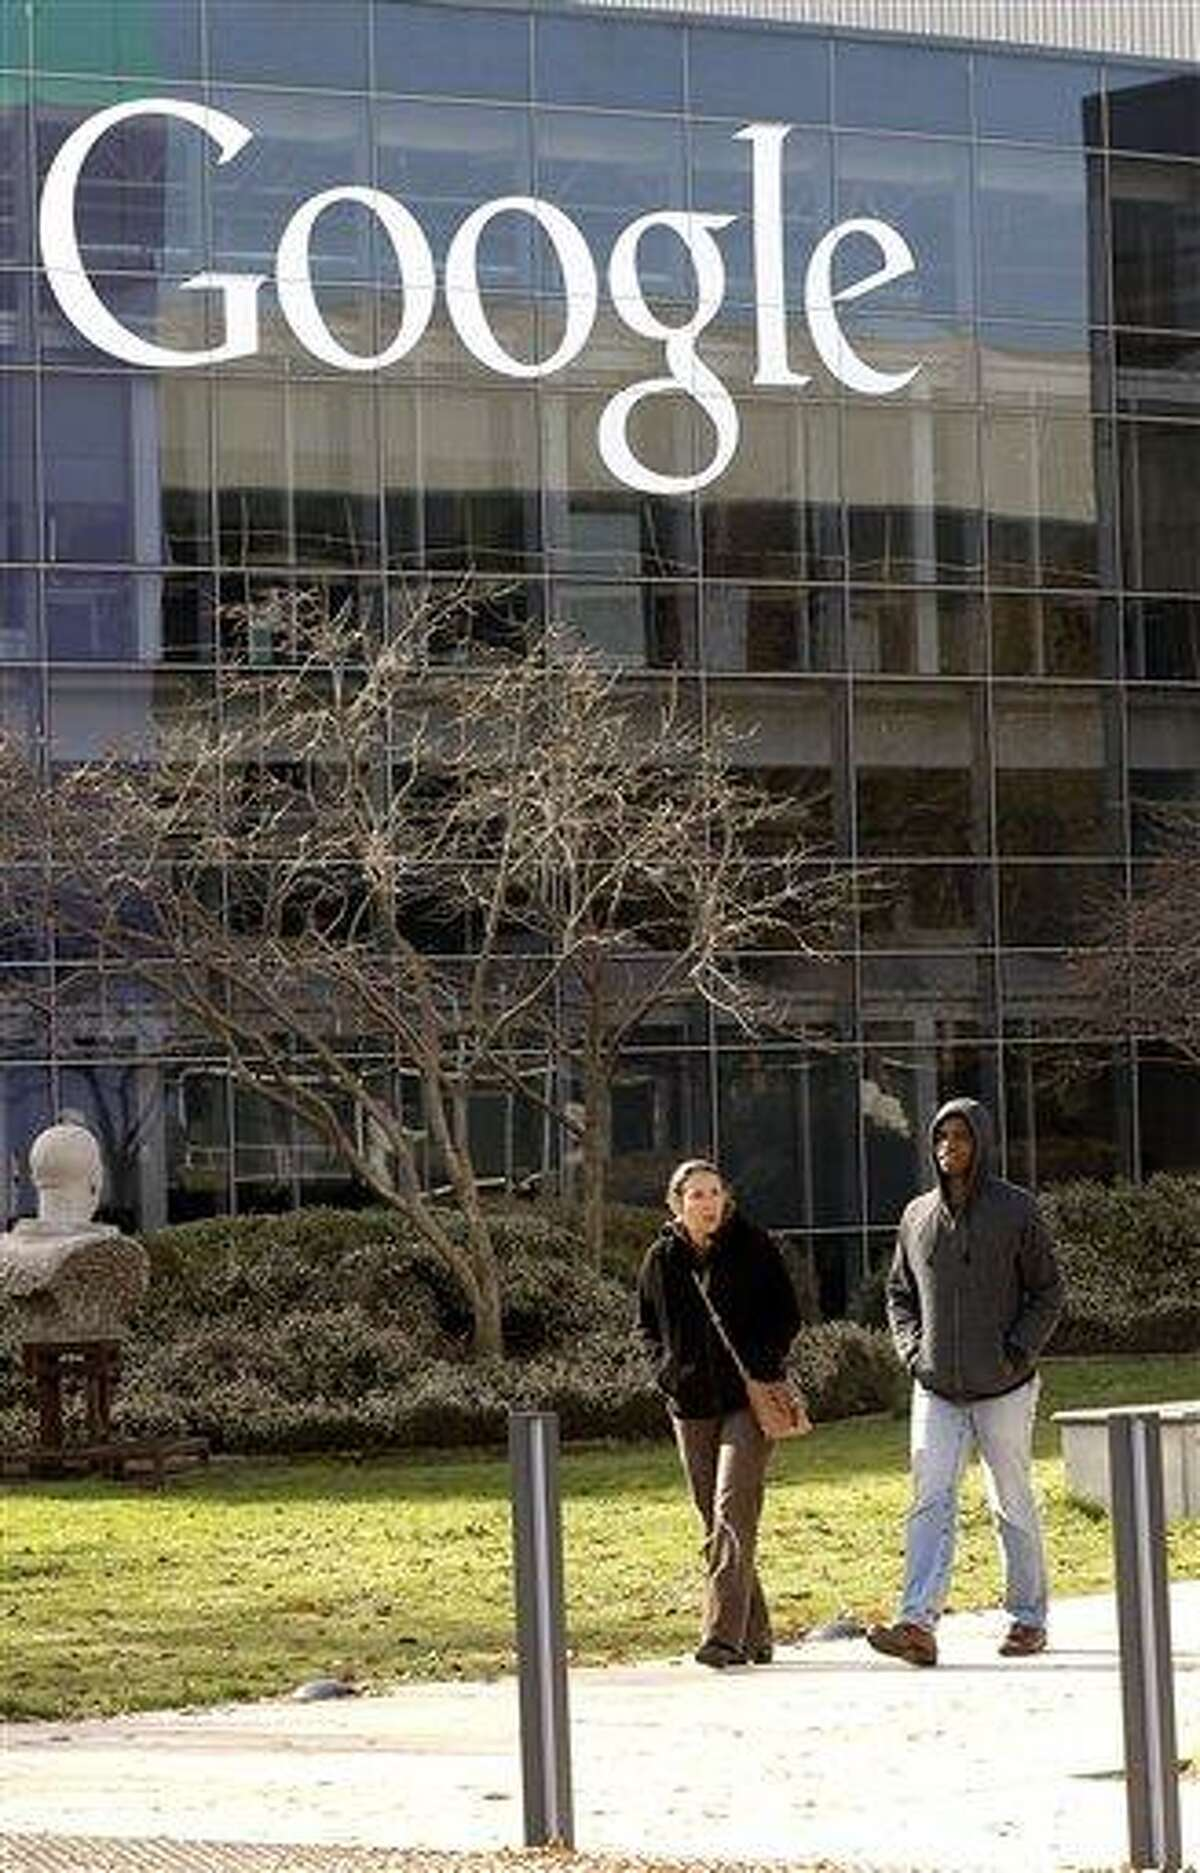 This Thursday, Jan. 3, 2013, photo shows a Google sign at the company's headquarters in Mountain View, Calif. (AP Photo/Marcio Jose Sanchez)